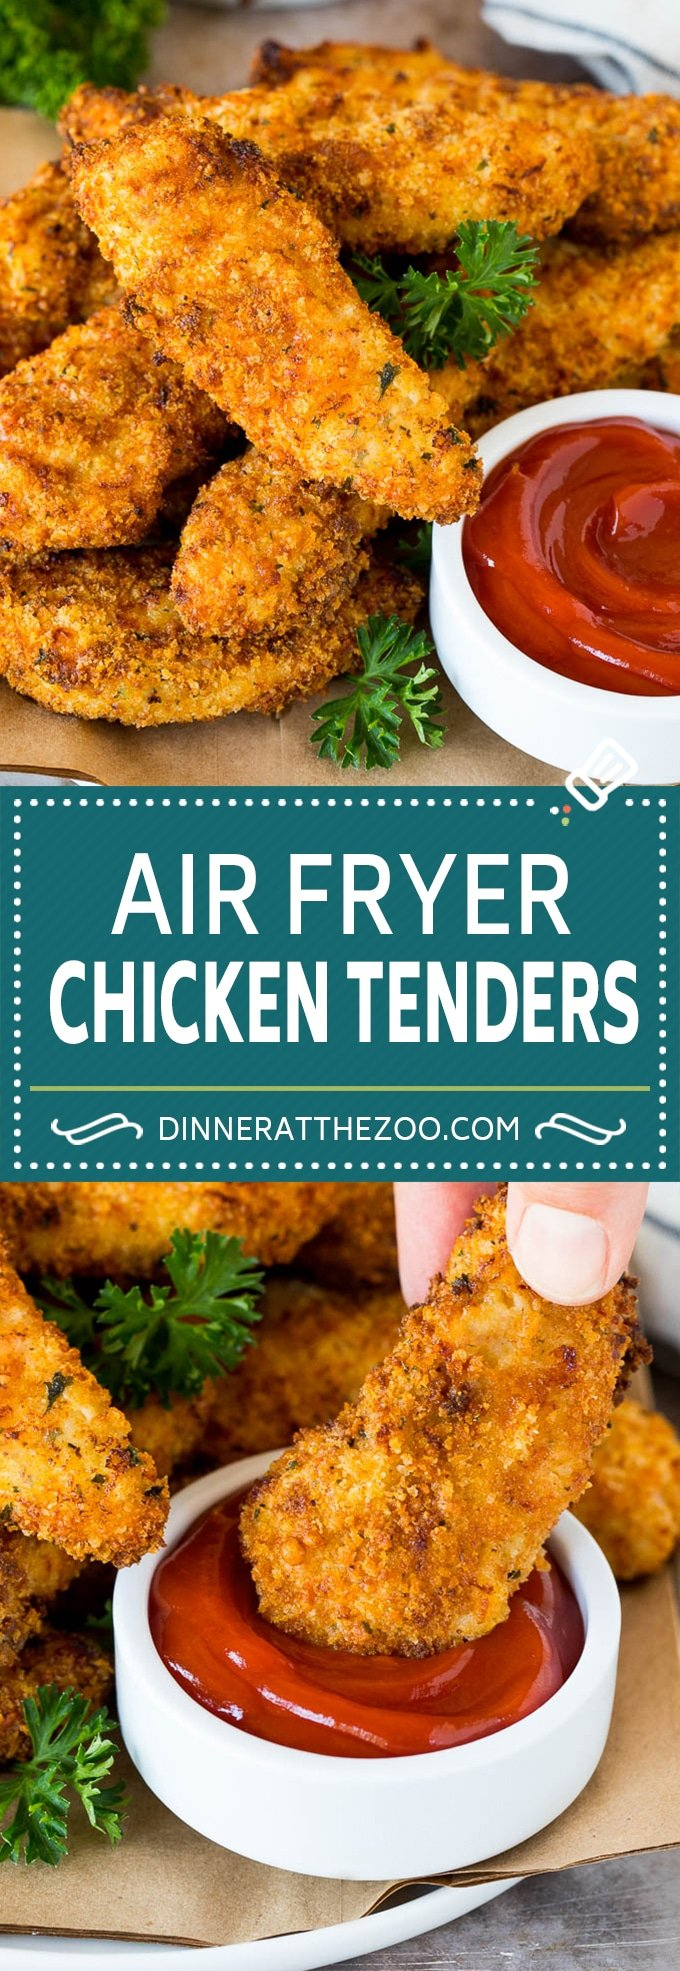 These air fryer chicken tenders are fresh chicken tenderloins coated in breadcrumbs, spices and parmesan cheese, then air fried until golden brown.